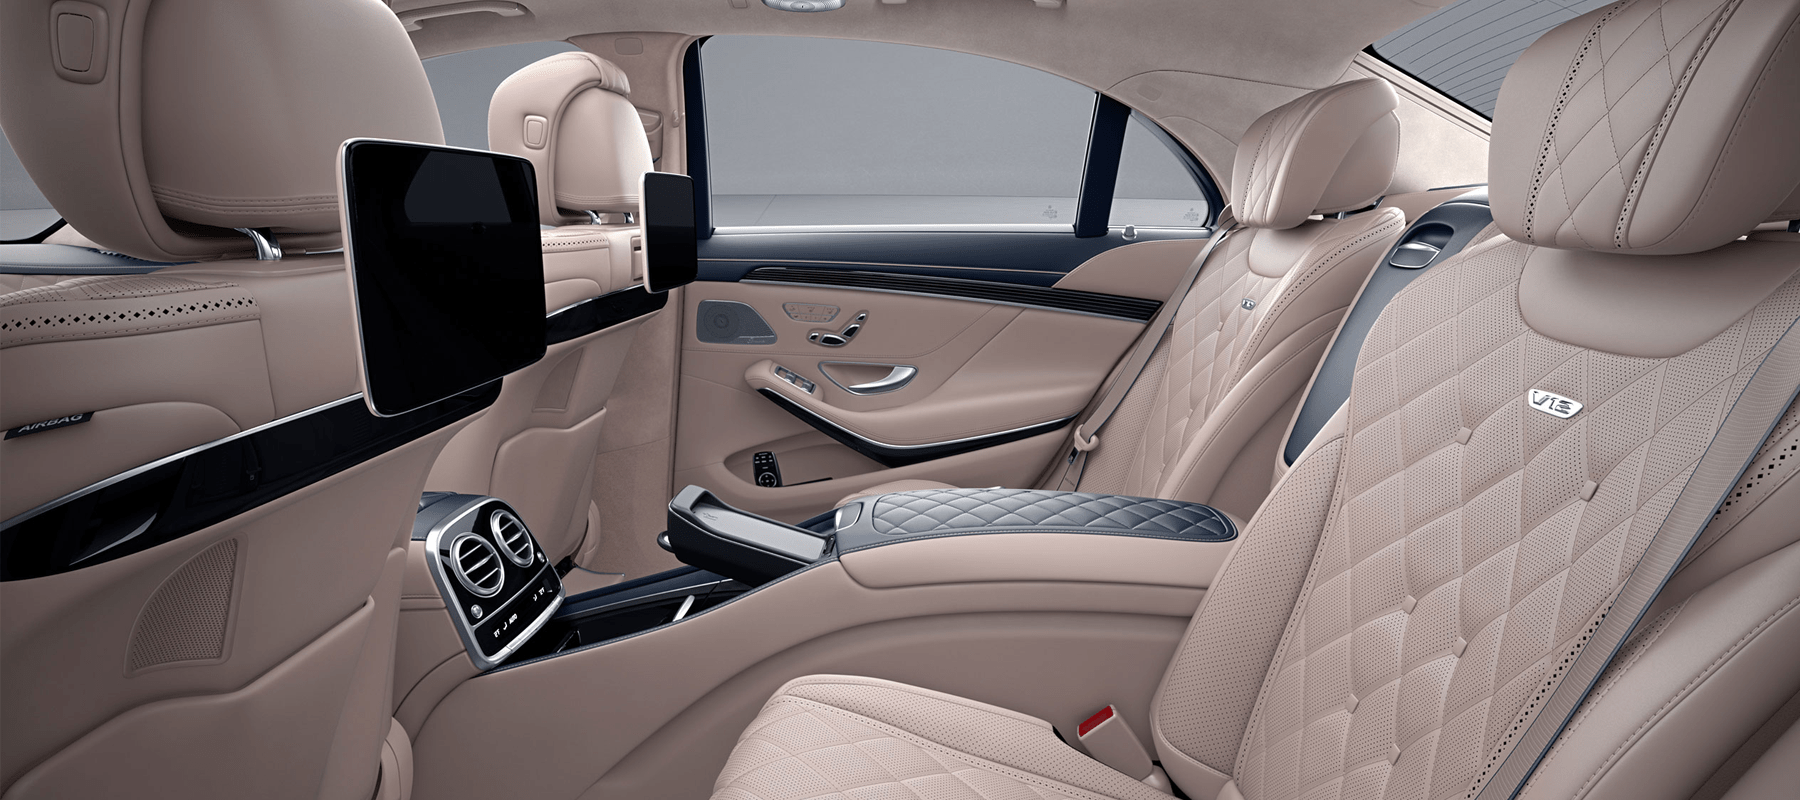 A Class 2018 Interior 2018 Mercedes Benz S Class Sedan Exquisitely Redesigned